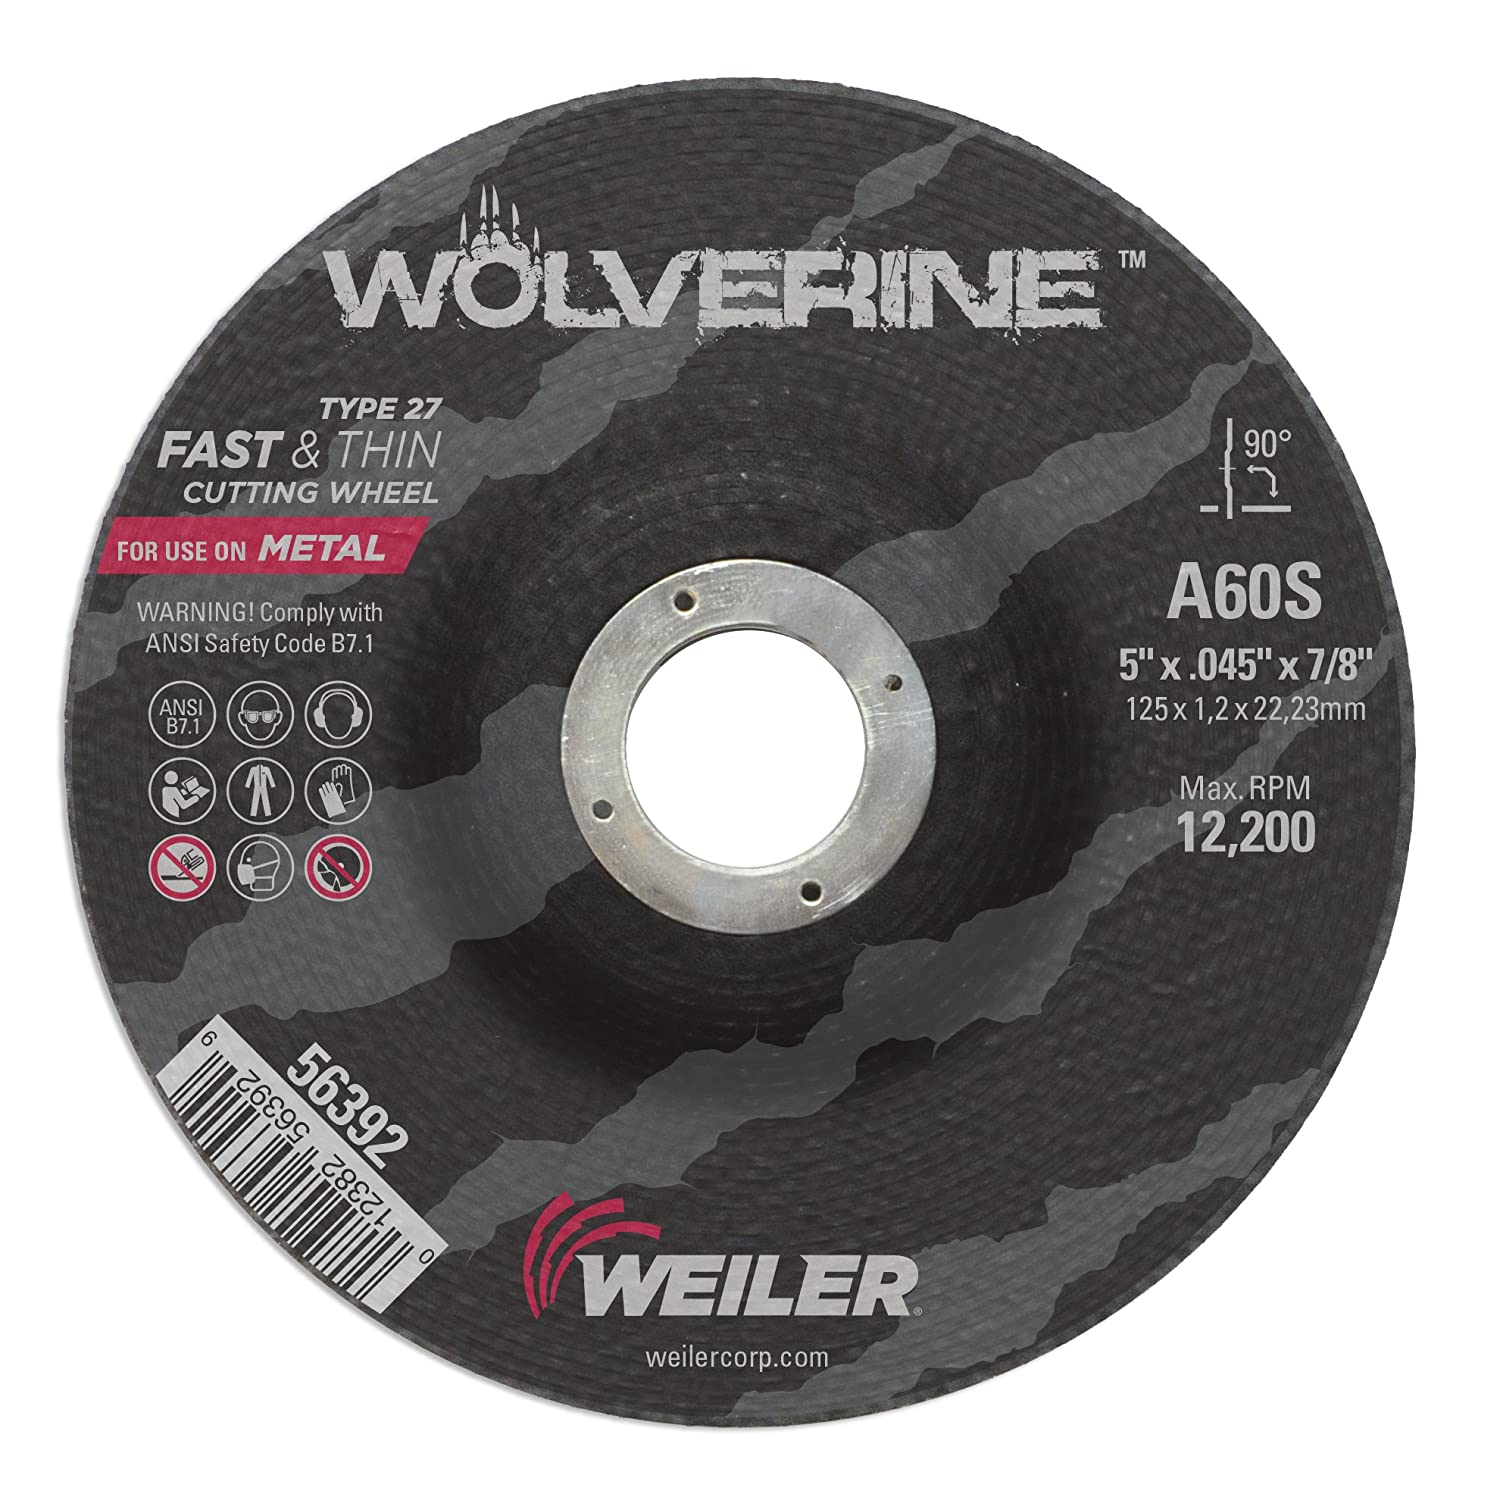 Pack of 100 A60S 30012382563920 Weiler 56392 5 x 0.045 Wolverine Type 27 Thin Cutting Wheel 7//8 A.H. 7//8 A.H. Pack of 100